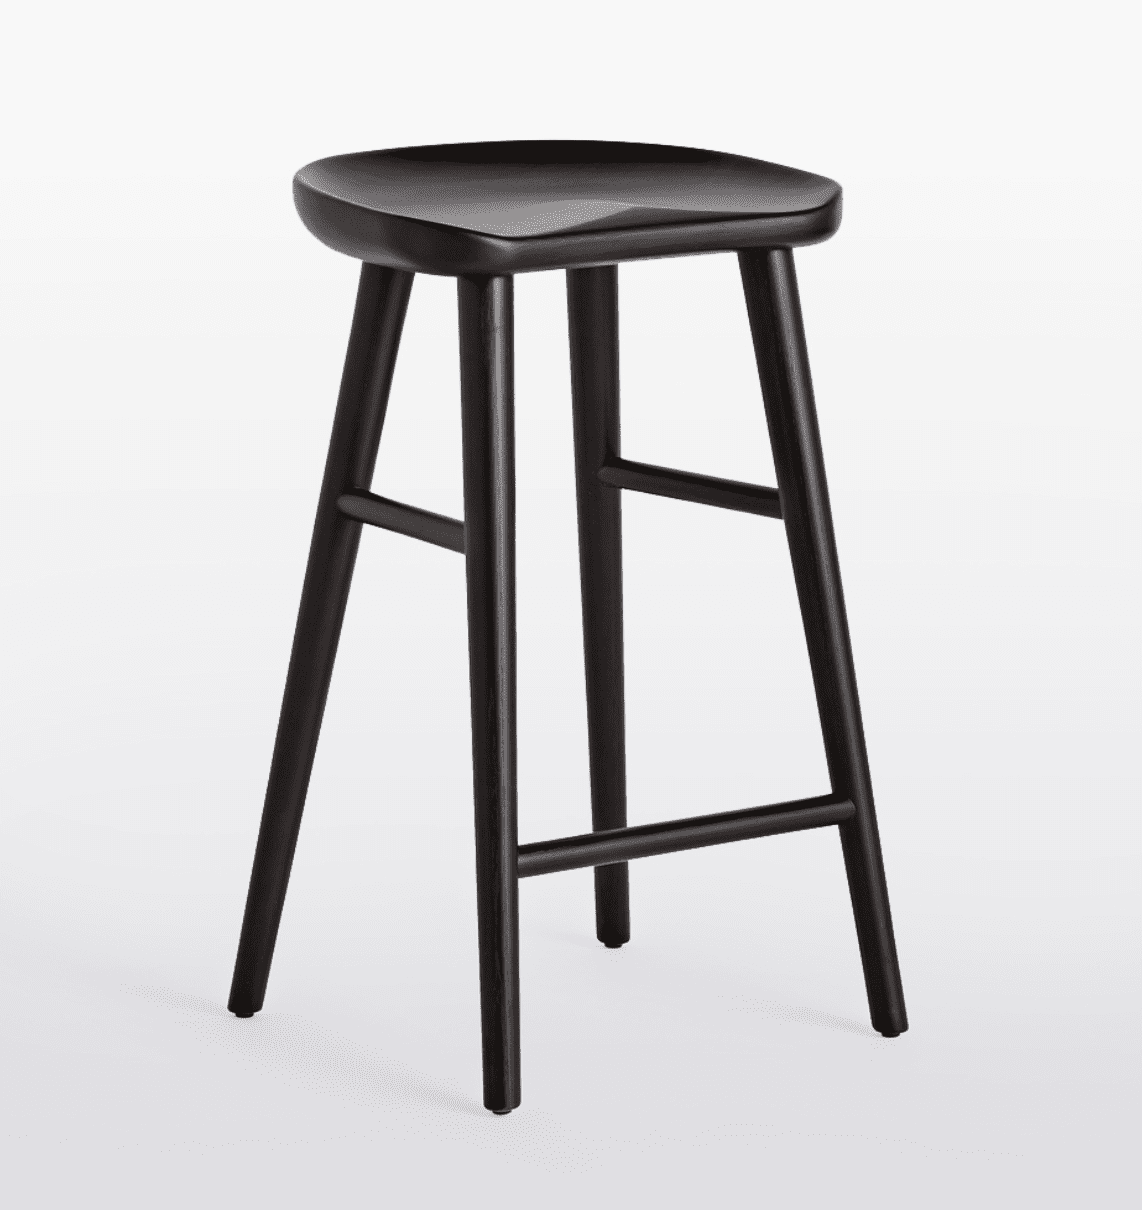 RANDLE TRACTOR COUNTER STOOL